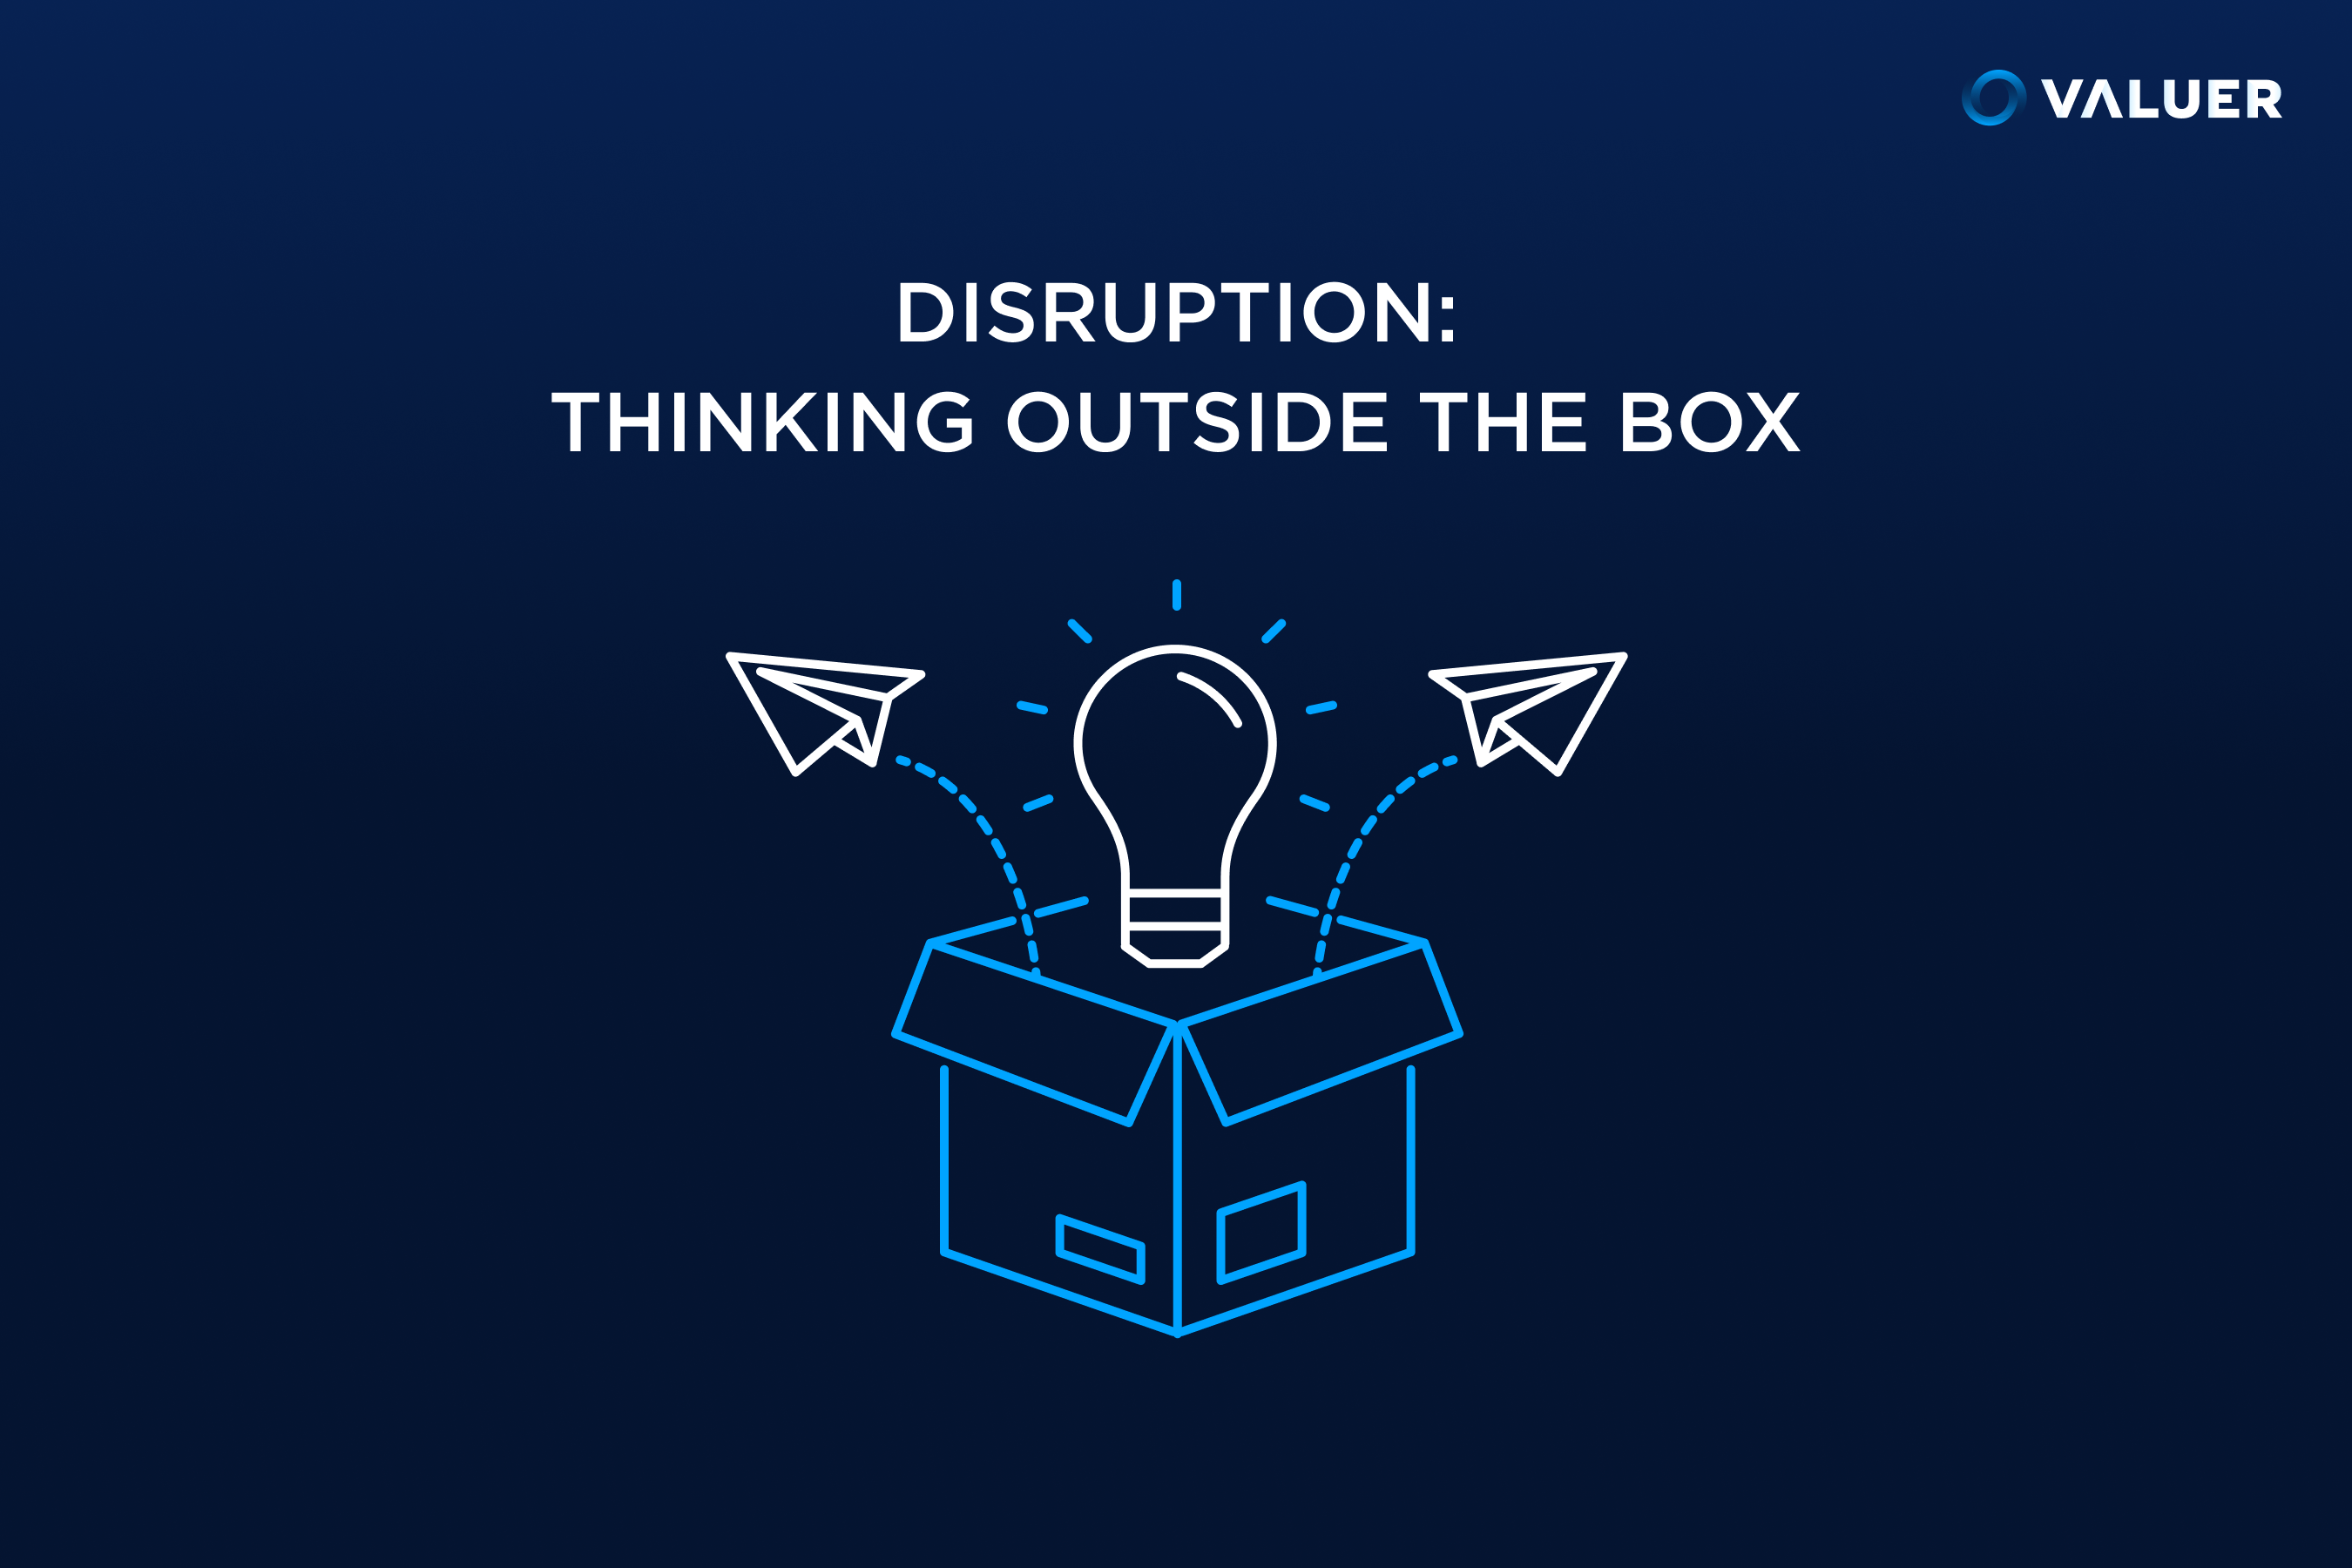 Disruption and Thinking Outside the Box